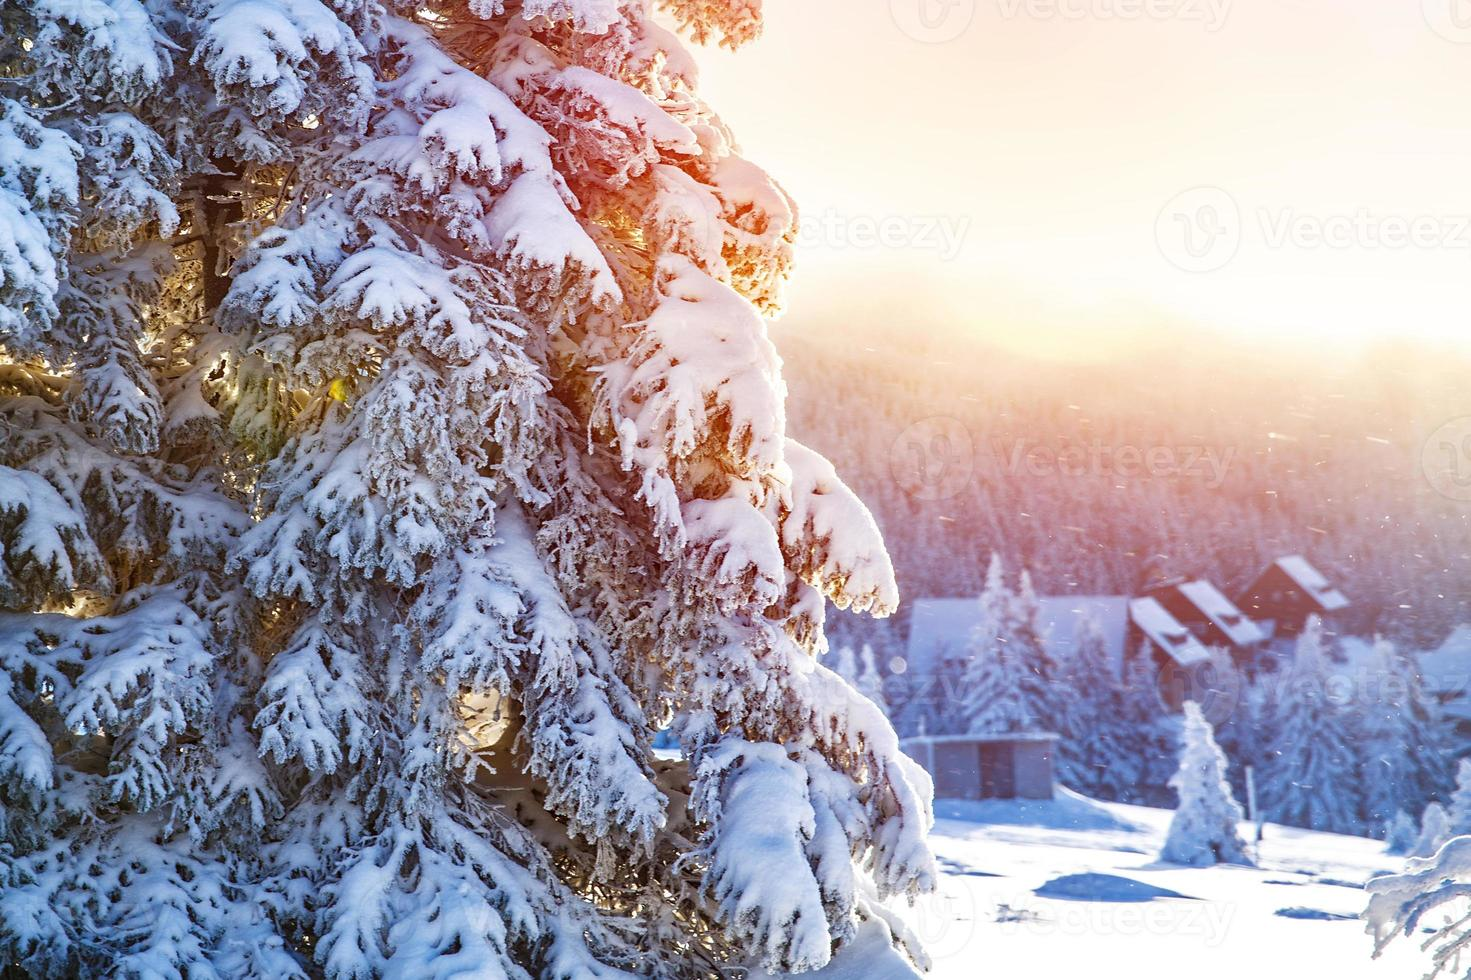 Winter in the mountains photo